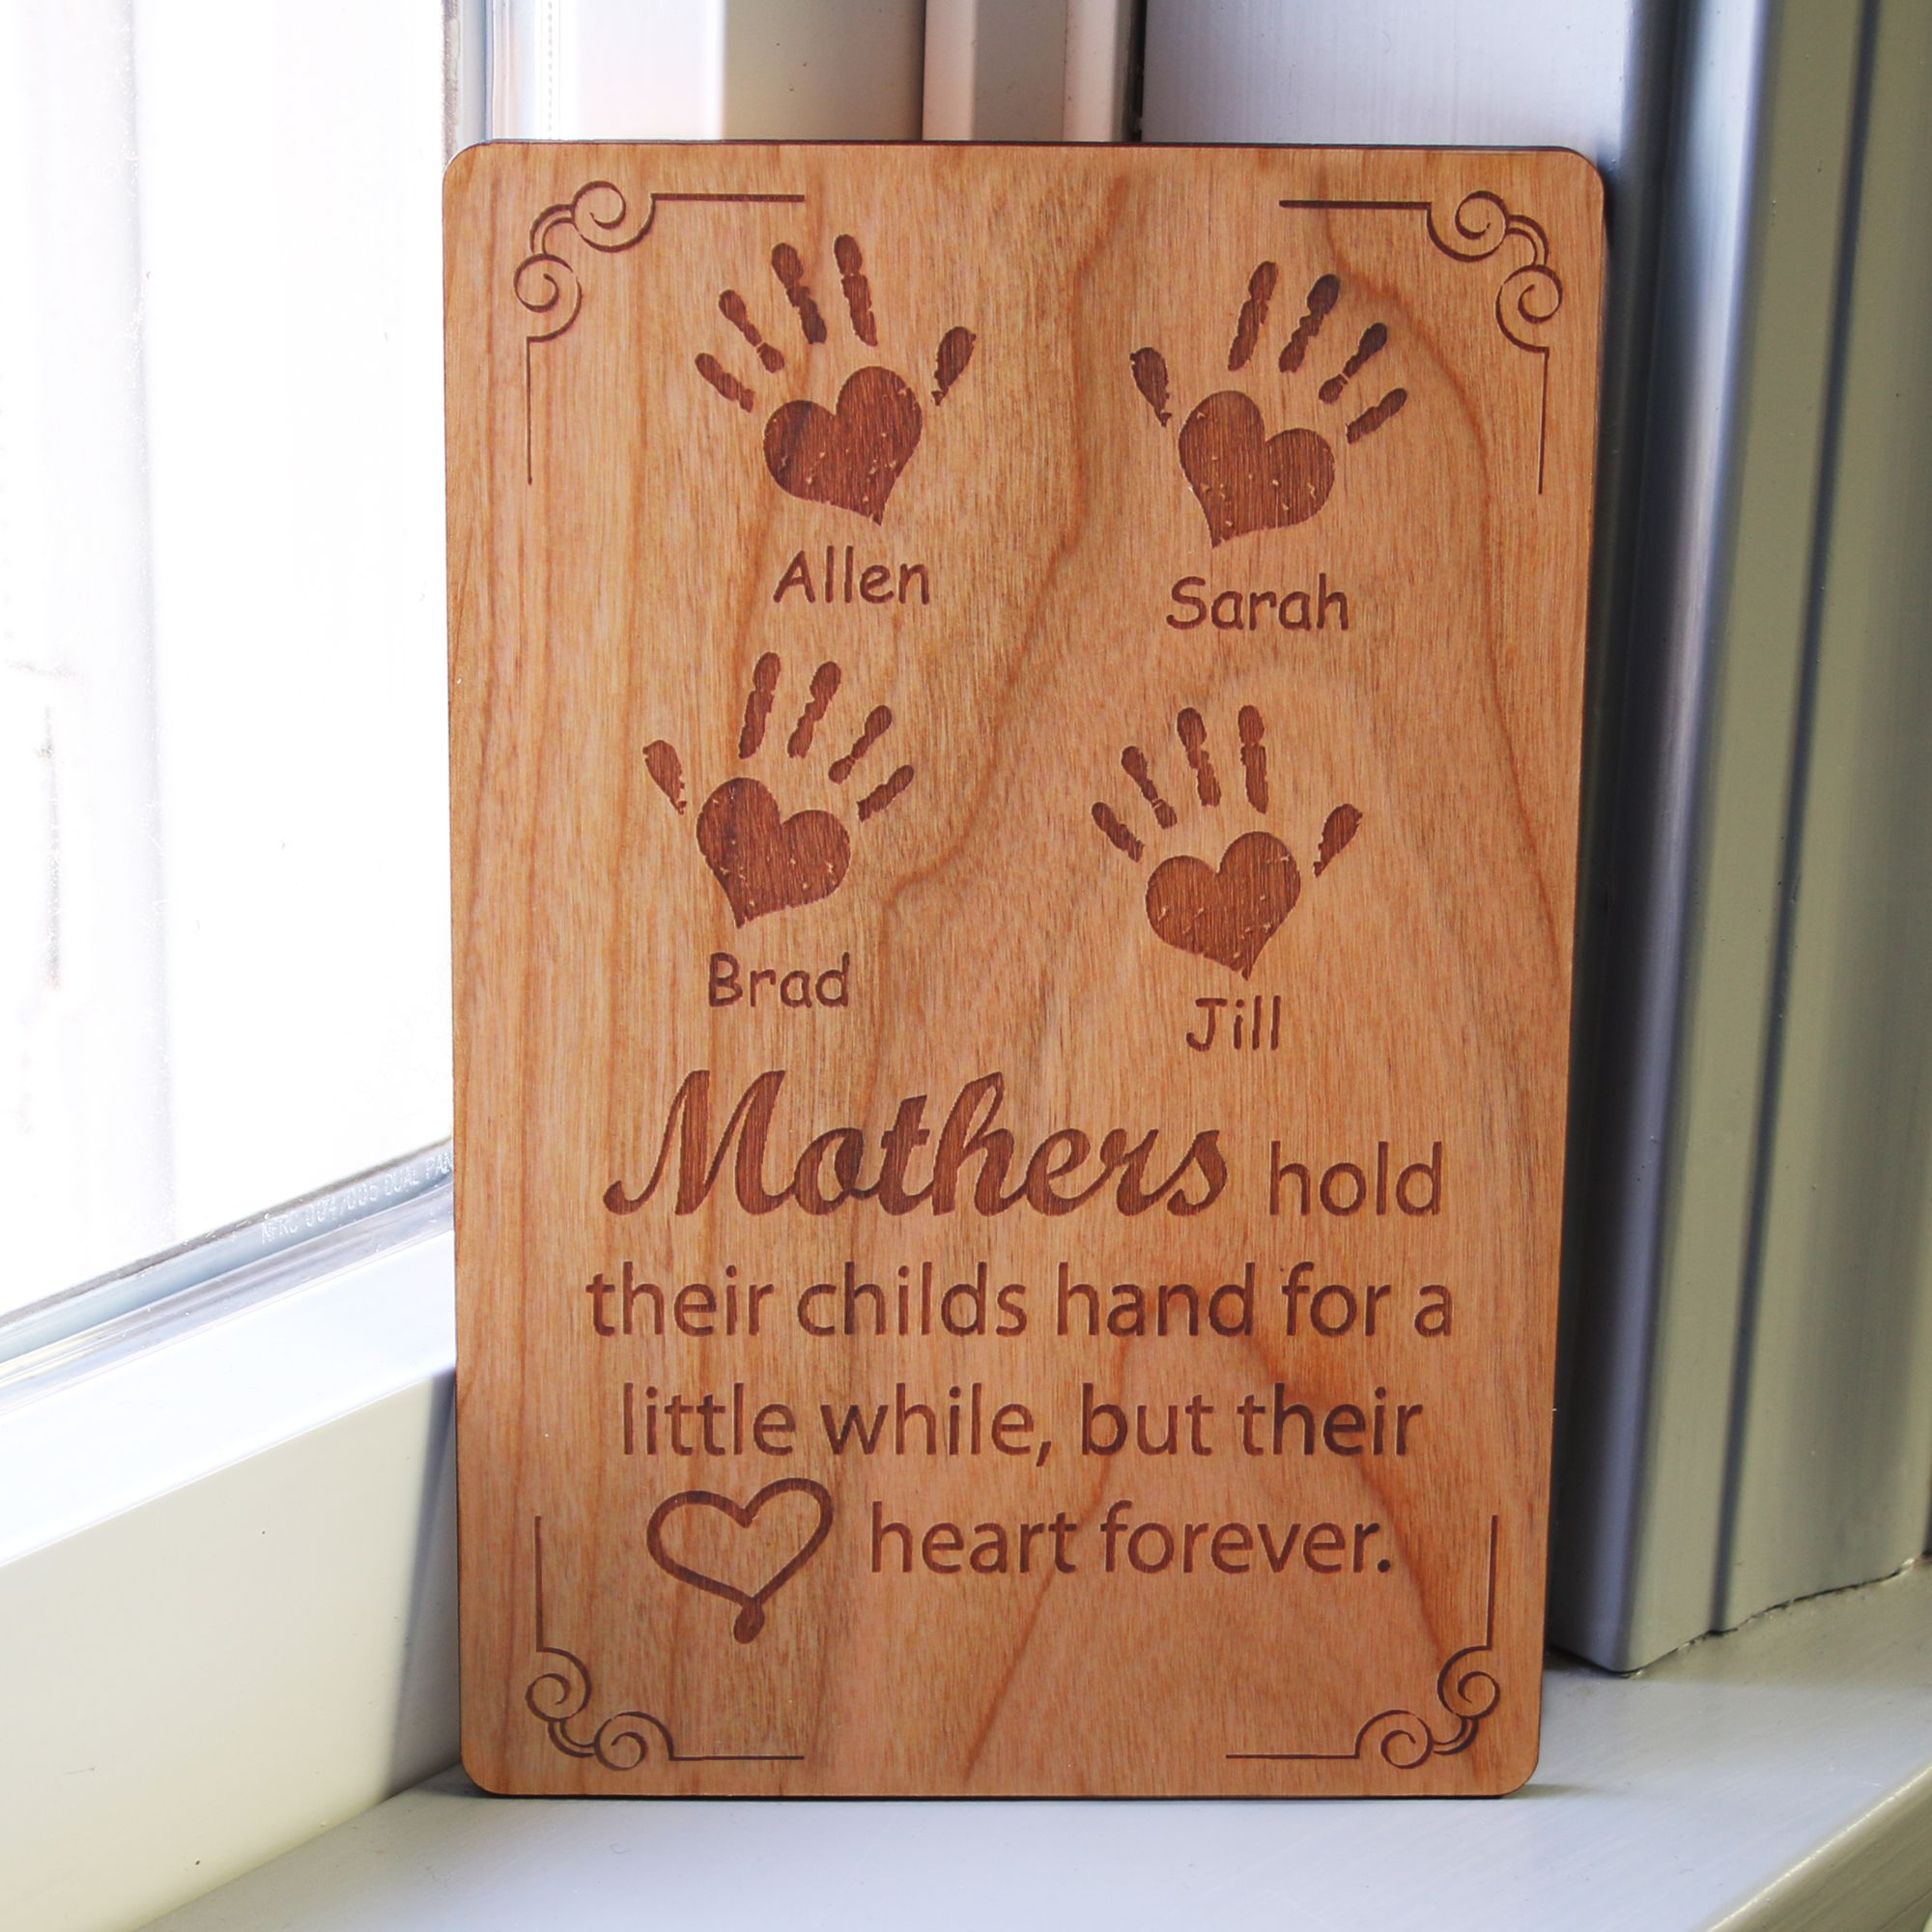 Personalized Rustic Wood Greeting Card Gift for Dad Husband Mom Unique gift card Anniversary gift Your text engraved on aged wood